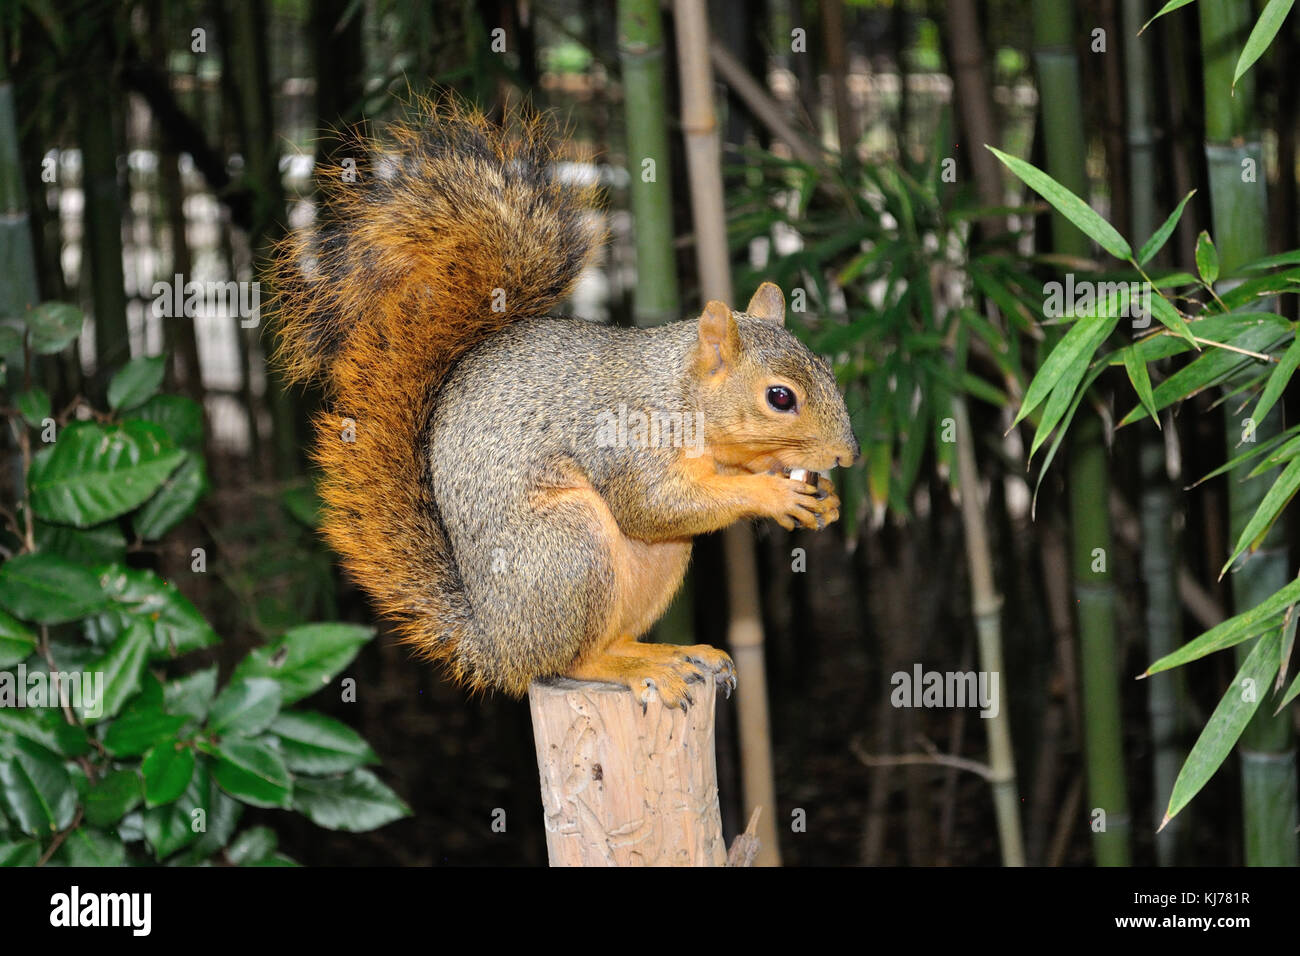 a red squirrel on a post in the garden - Stock Image